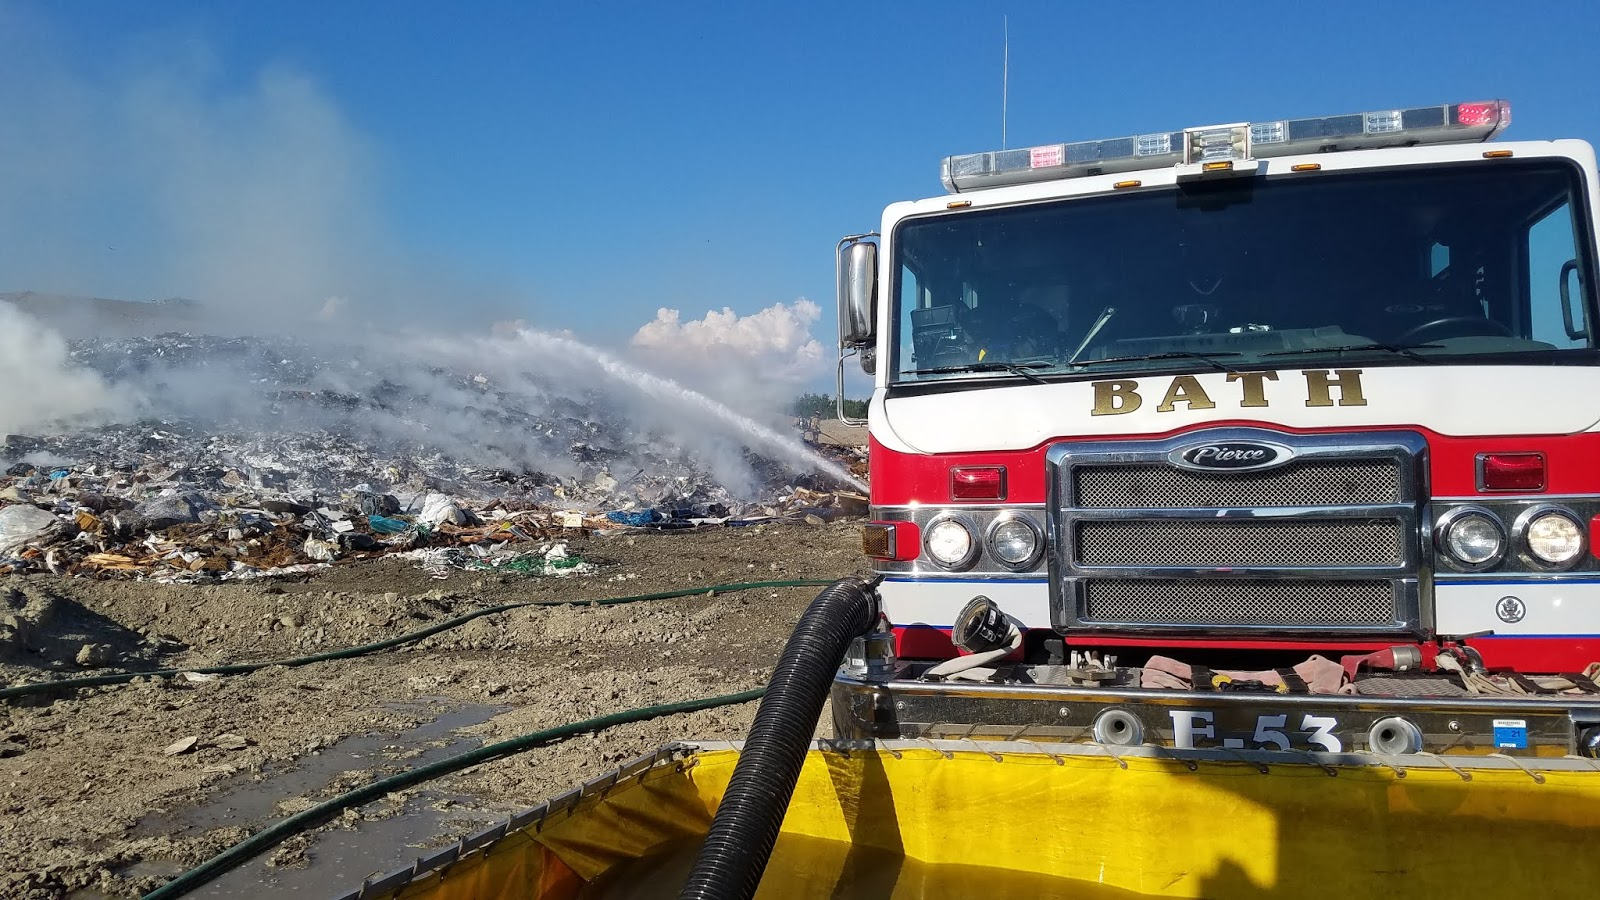 Heat likely caused fire at Steuben County Landfill